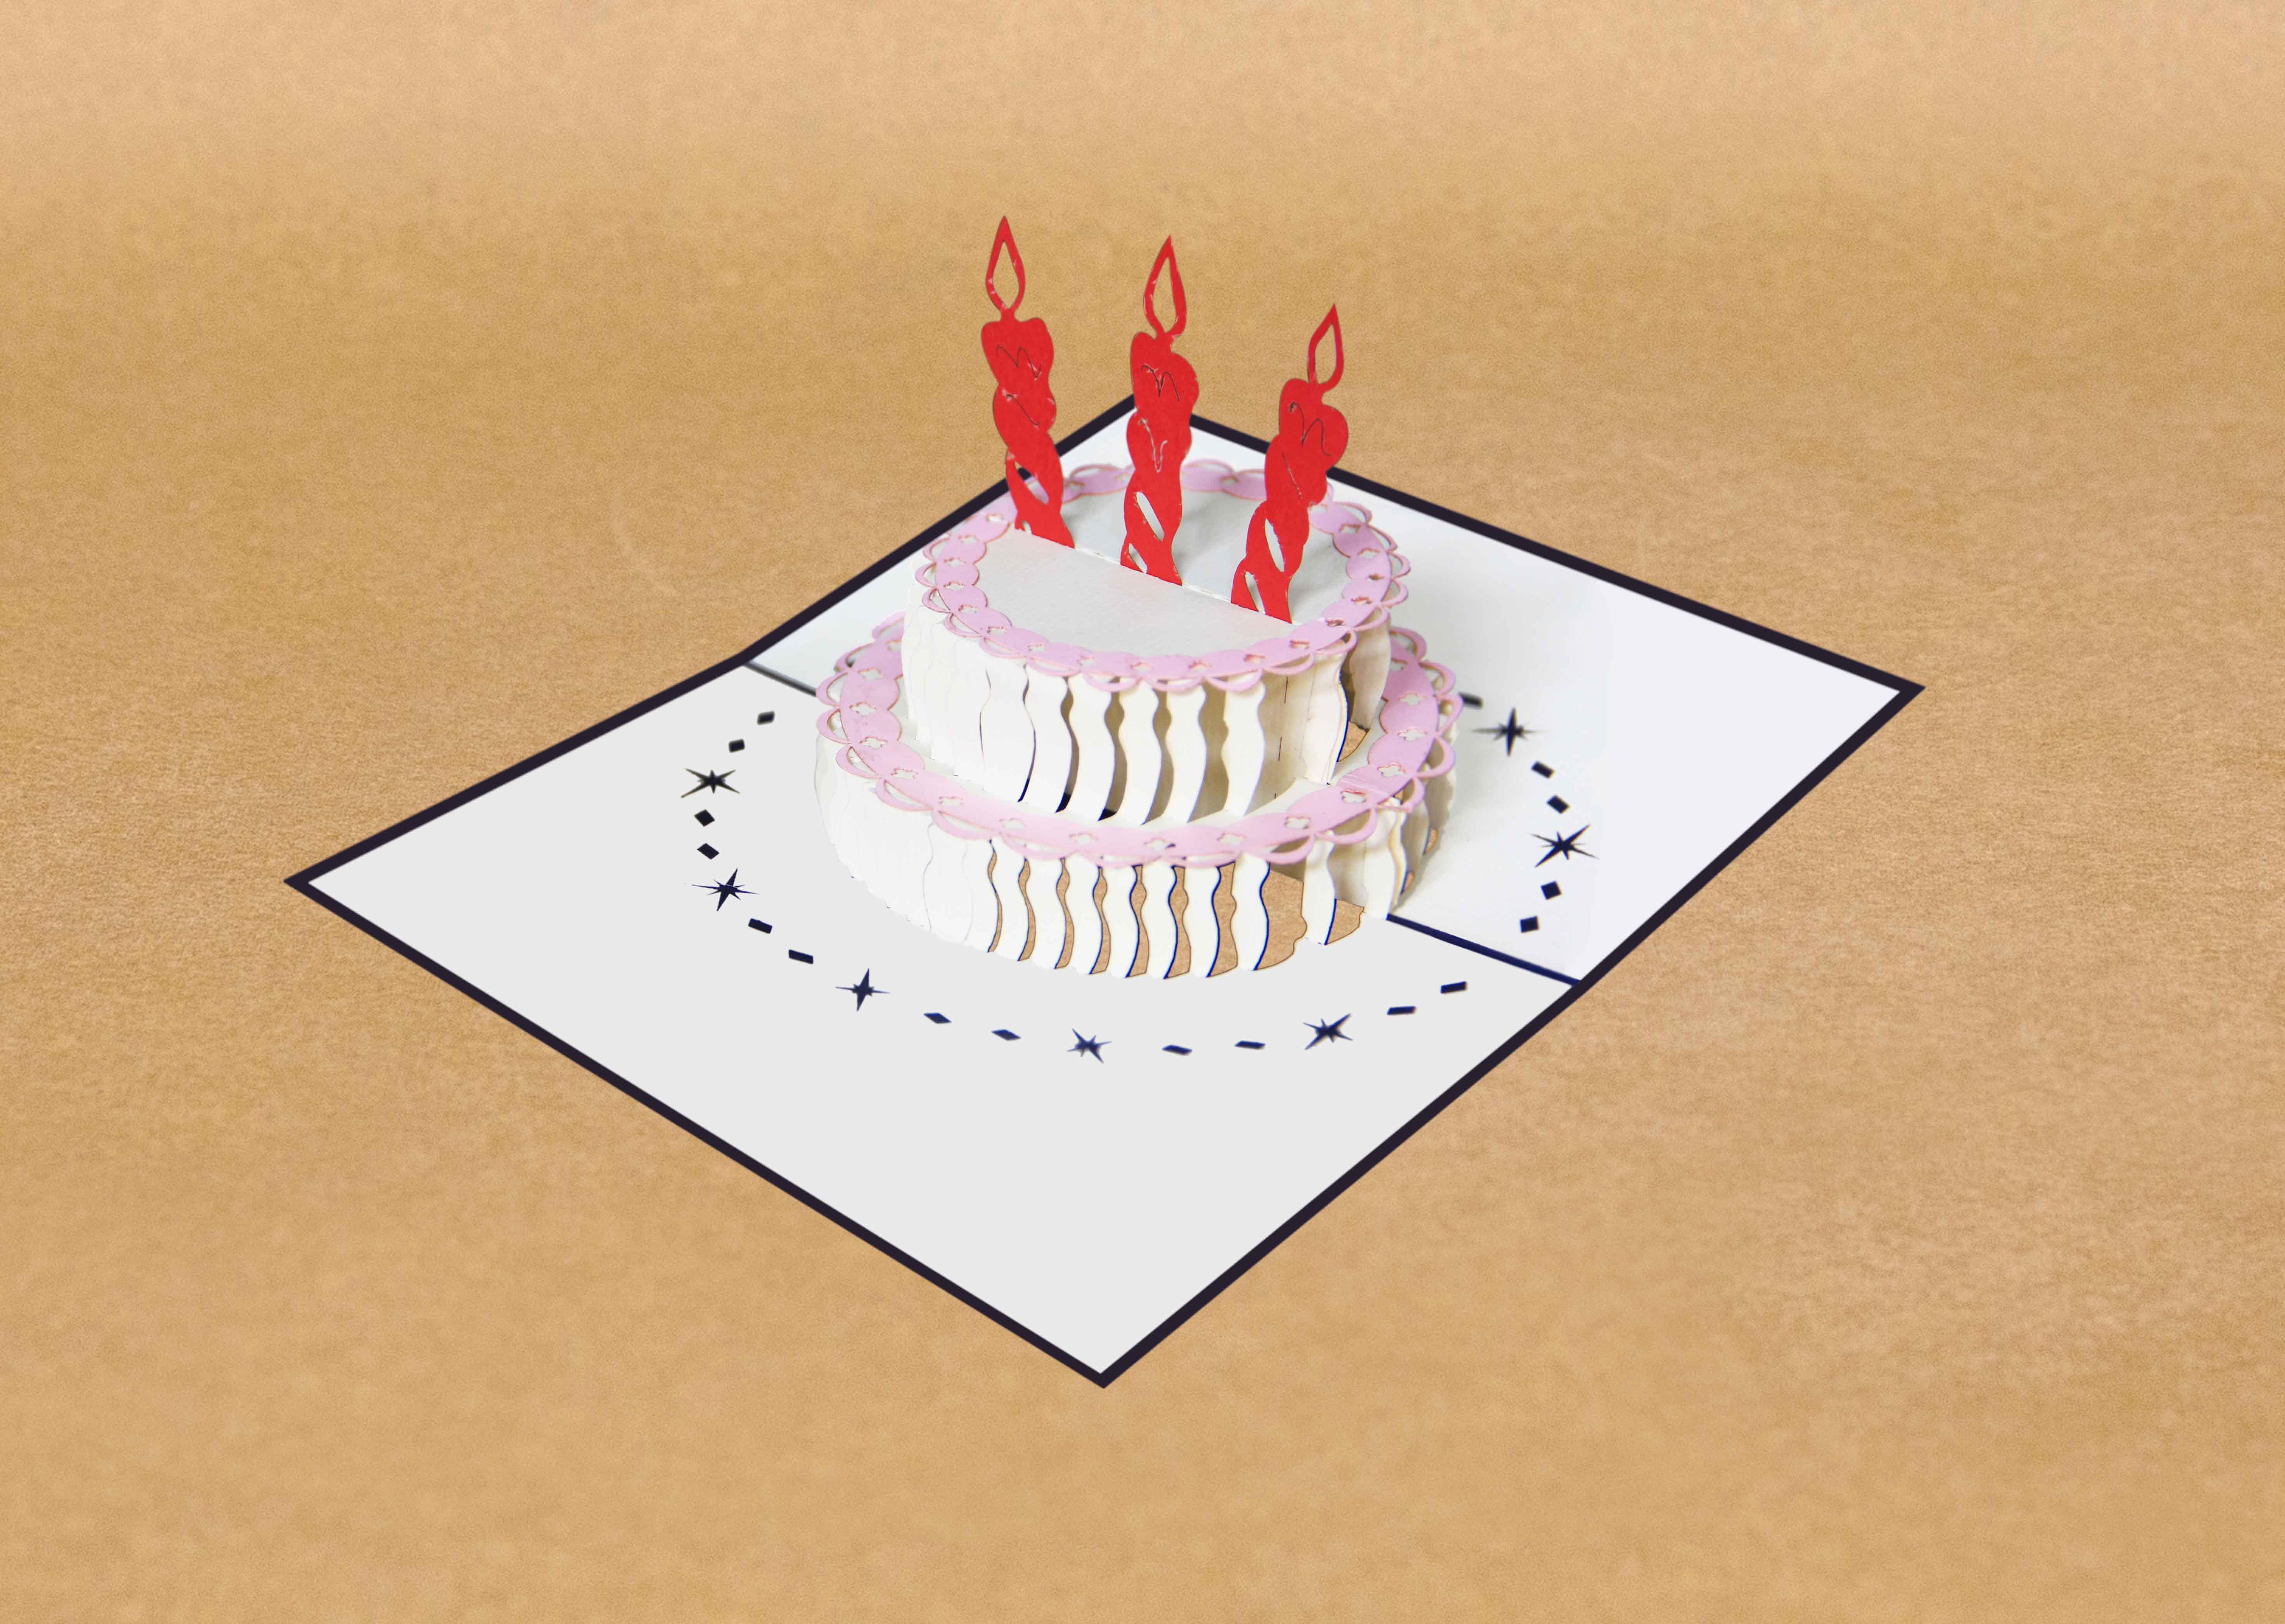 Birthday pop up card a simple birthday card pop up cards birthday pop up card bookmarktalkfo Image collections